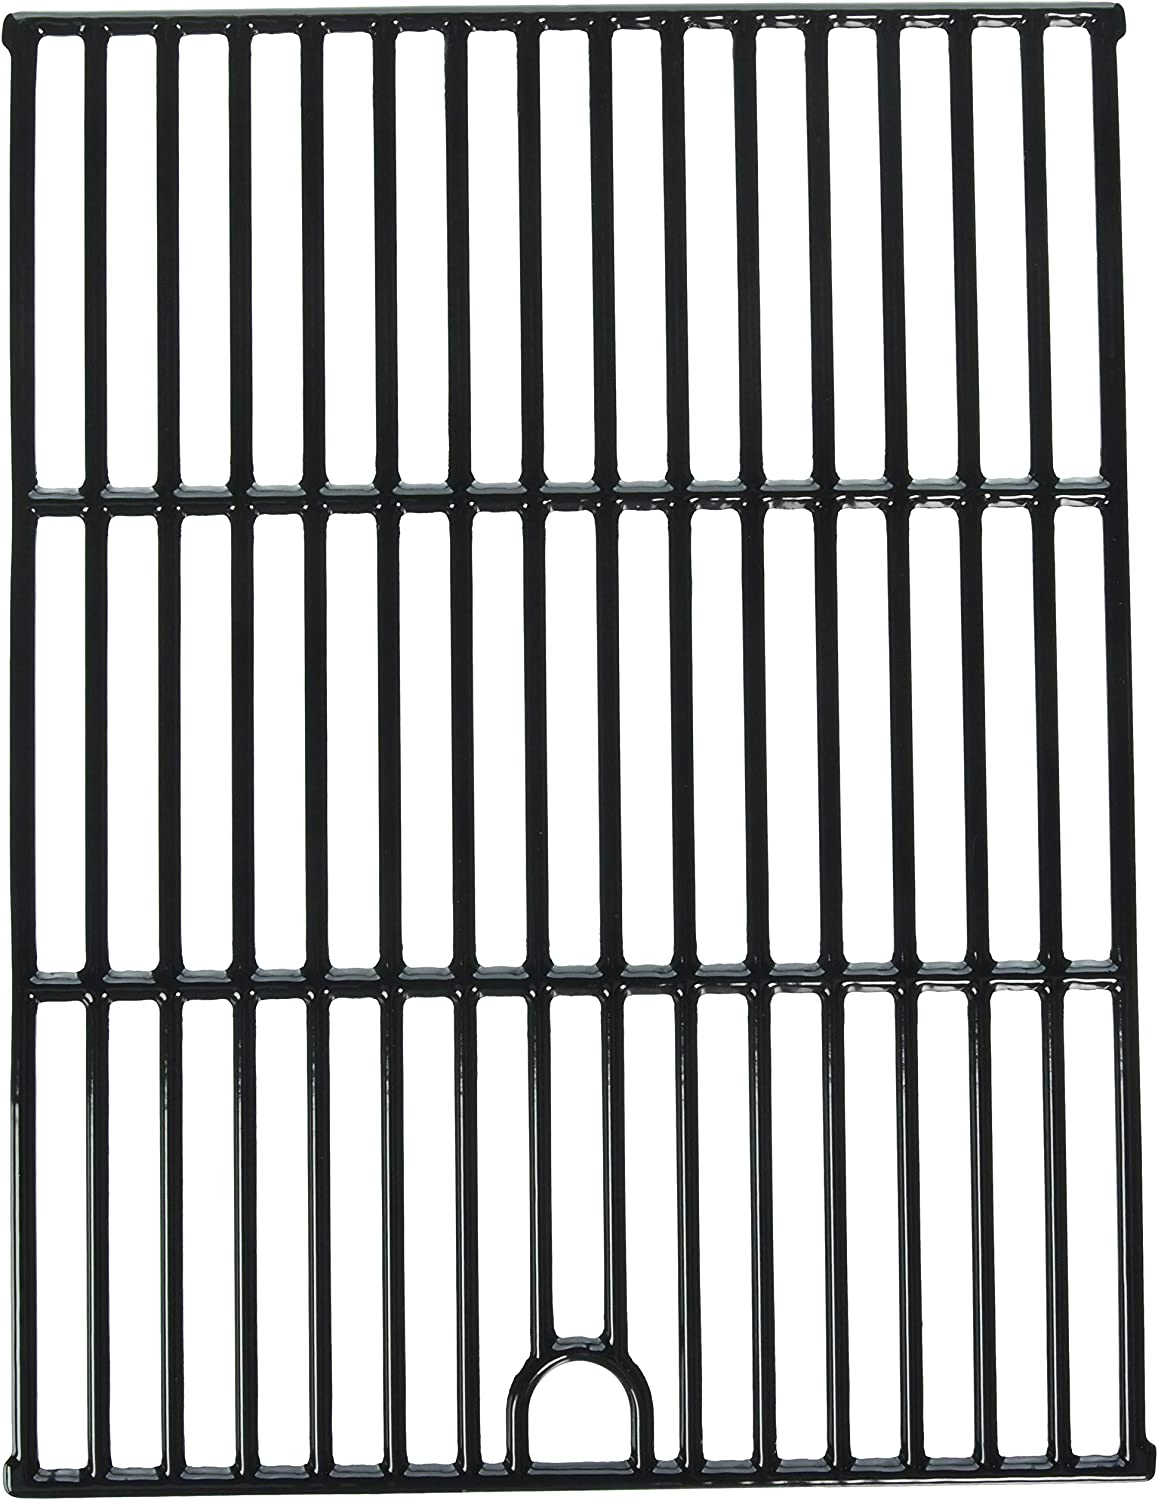 Music City Metals 66342 Gloss Cast Iron Cooking Grid Replacement for Select Gas Grill Models by Kenmore, Nexgrill and Others, Set of 2